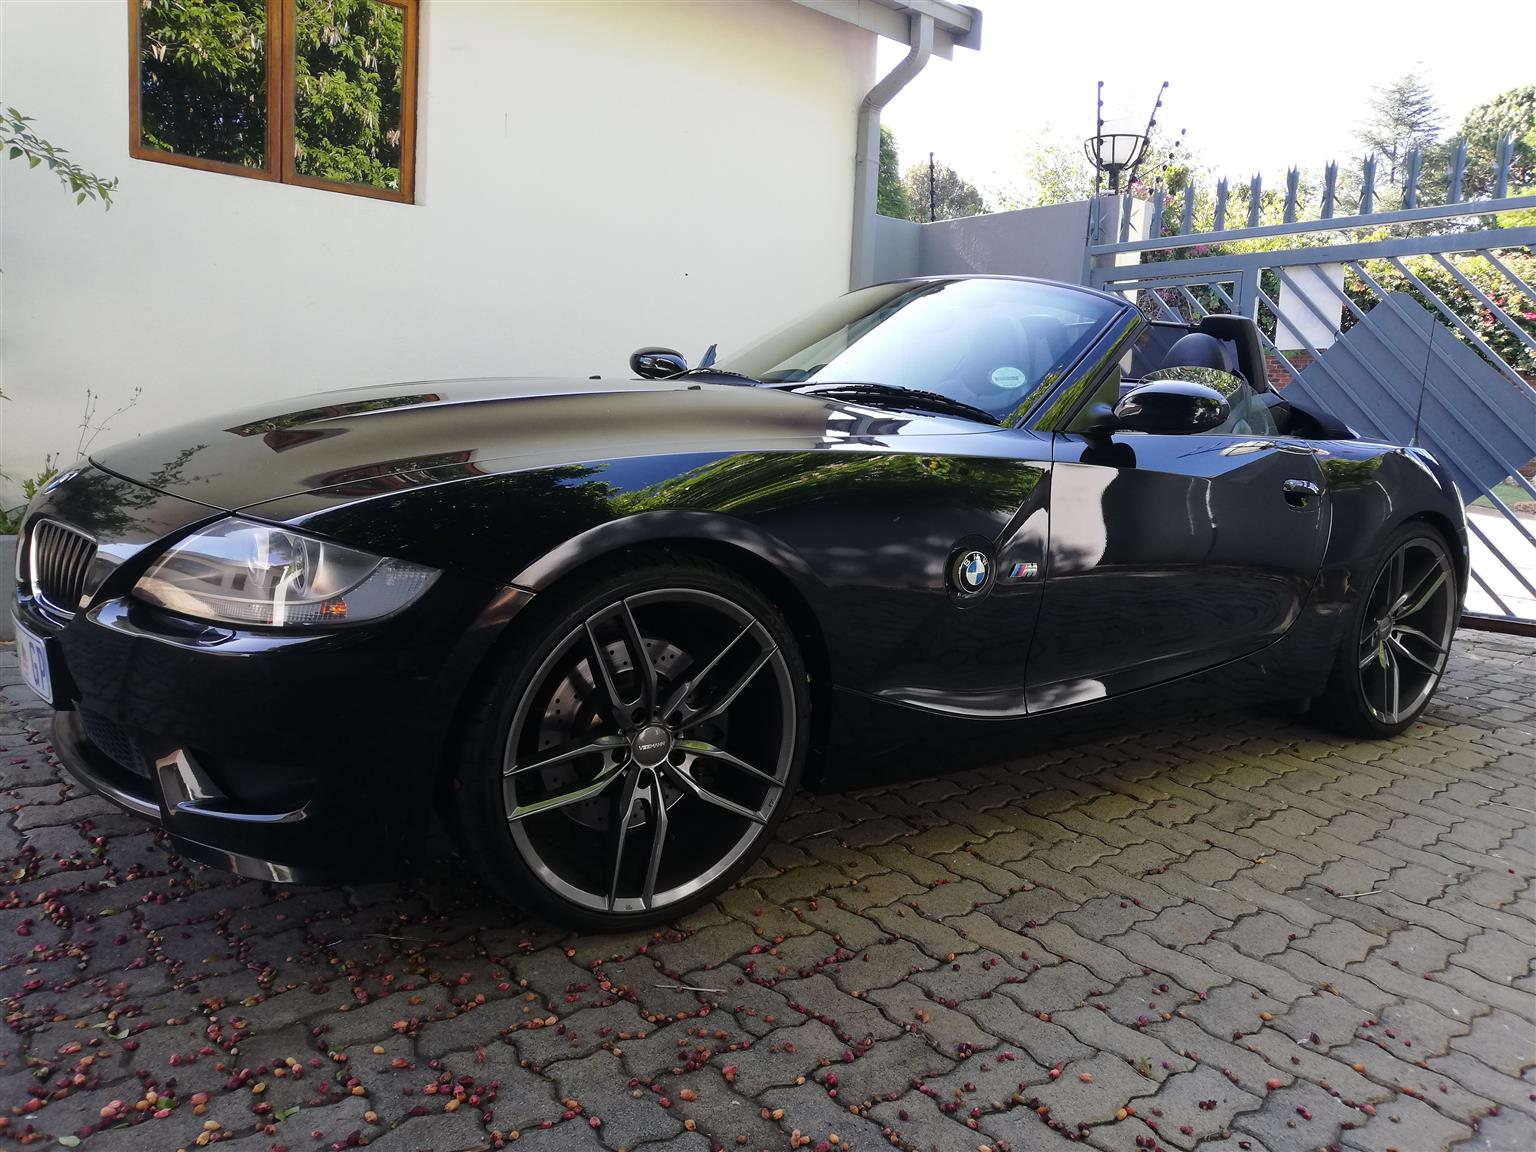 2007 BMW Z4 M roadster Exclusive